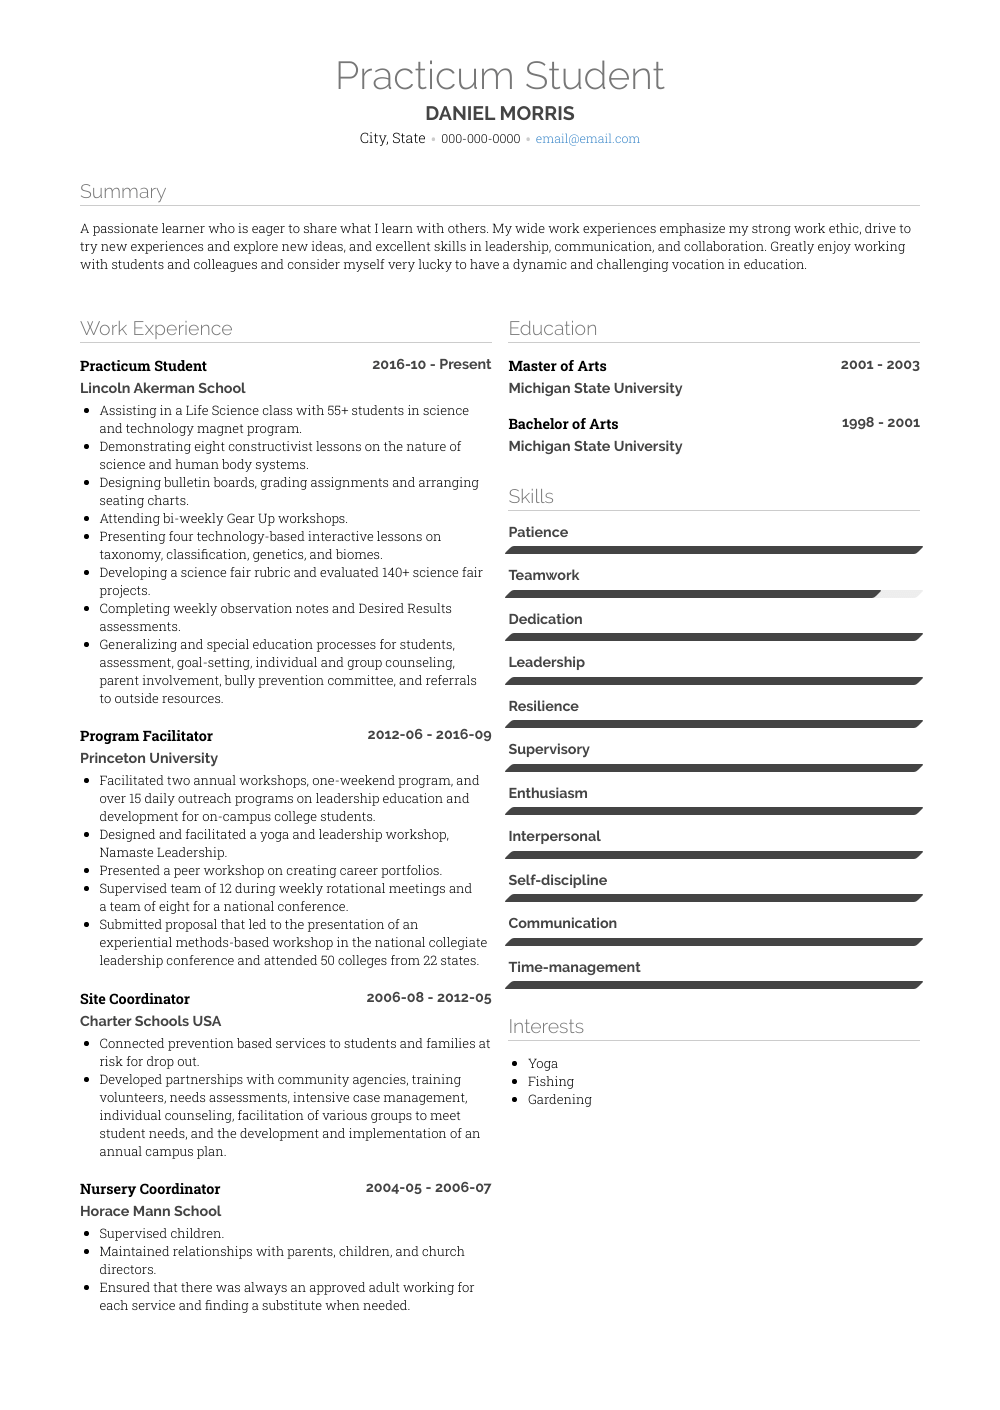 Practicum Student Resume Sample and Template